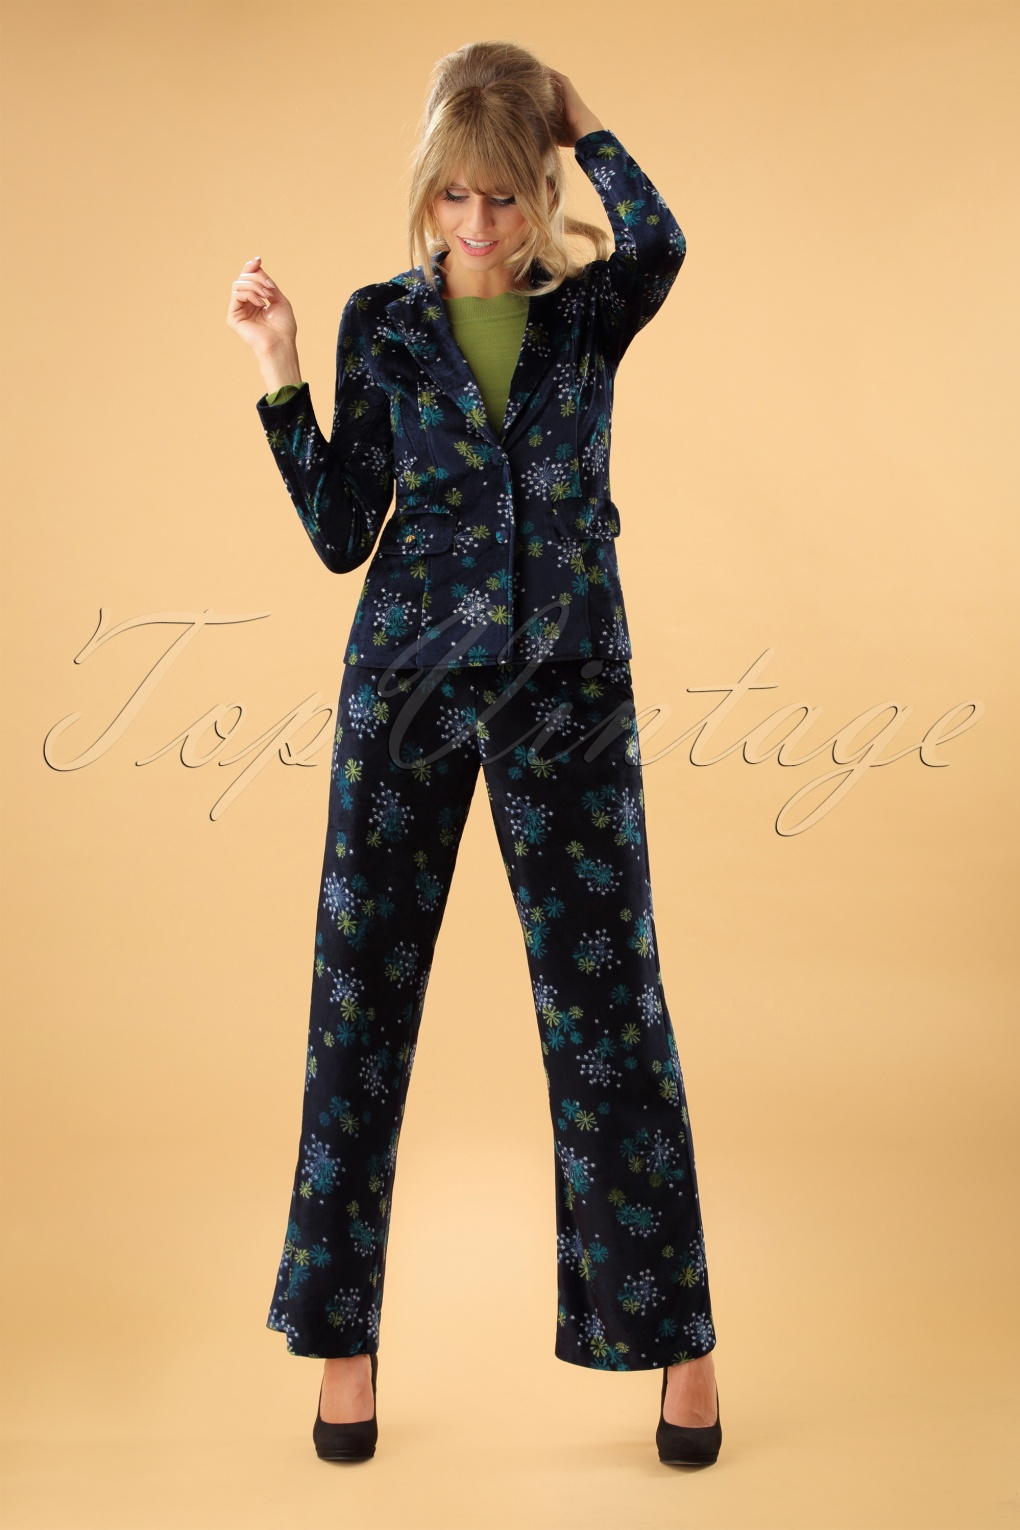 Vintage High Waisted Trousers, Sailor Pants, Jeans 70s Ethel Flared Stardust Trousers in Blue £69.60 AT vintagedancer.com